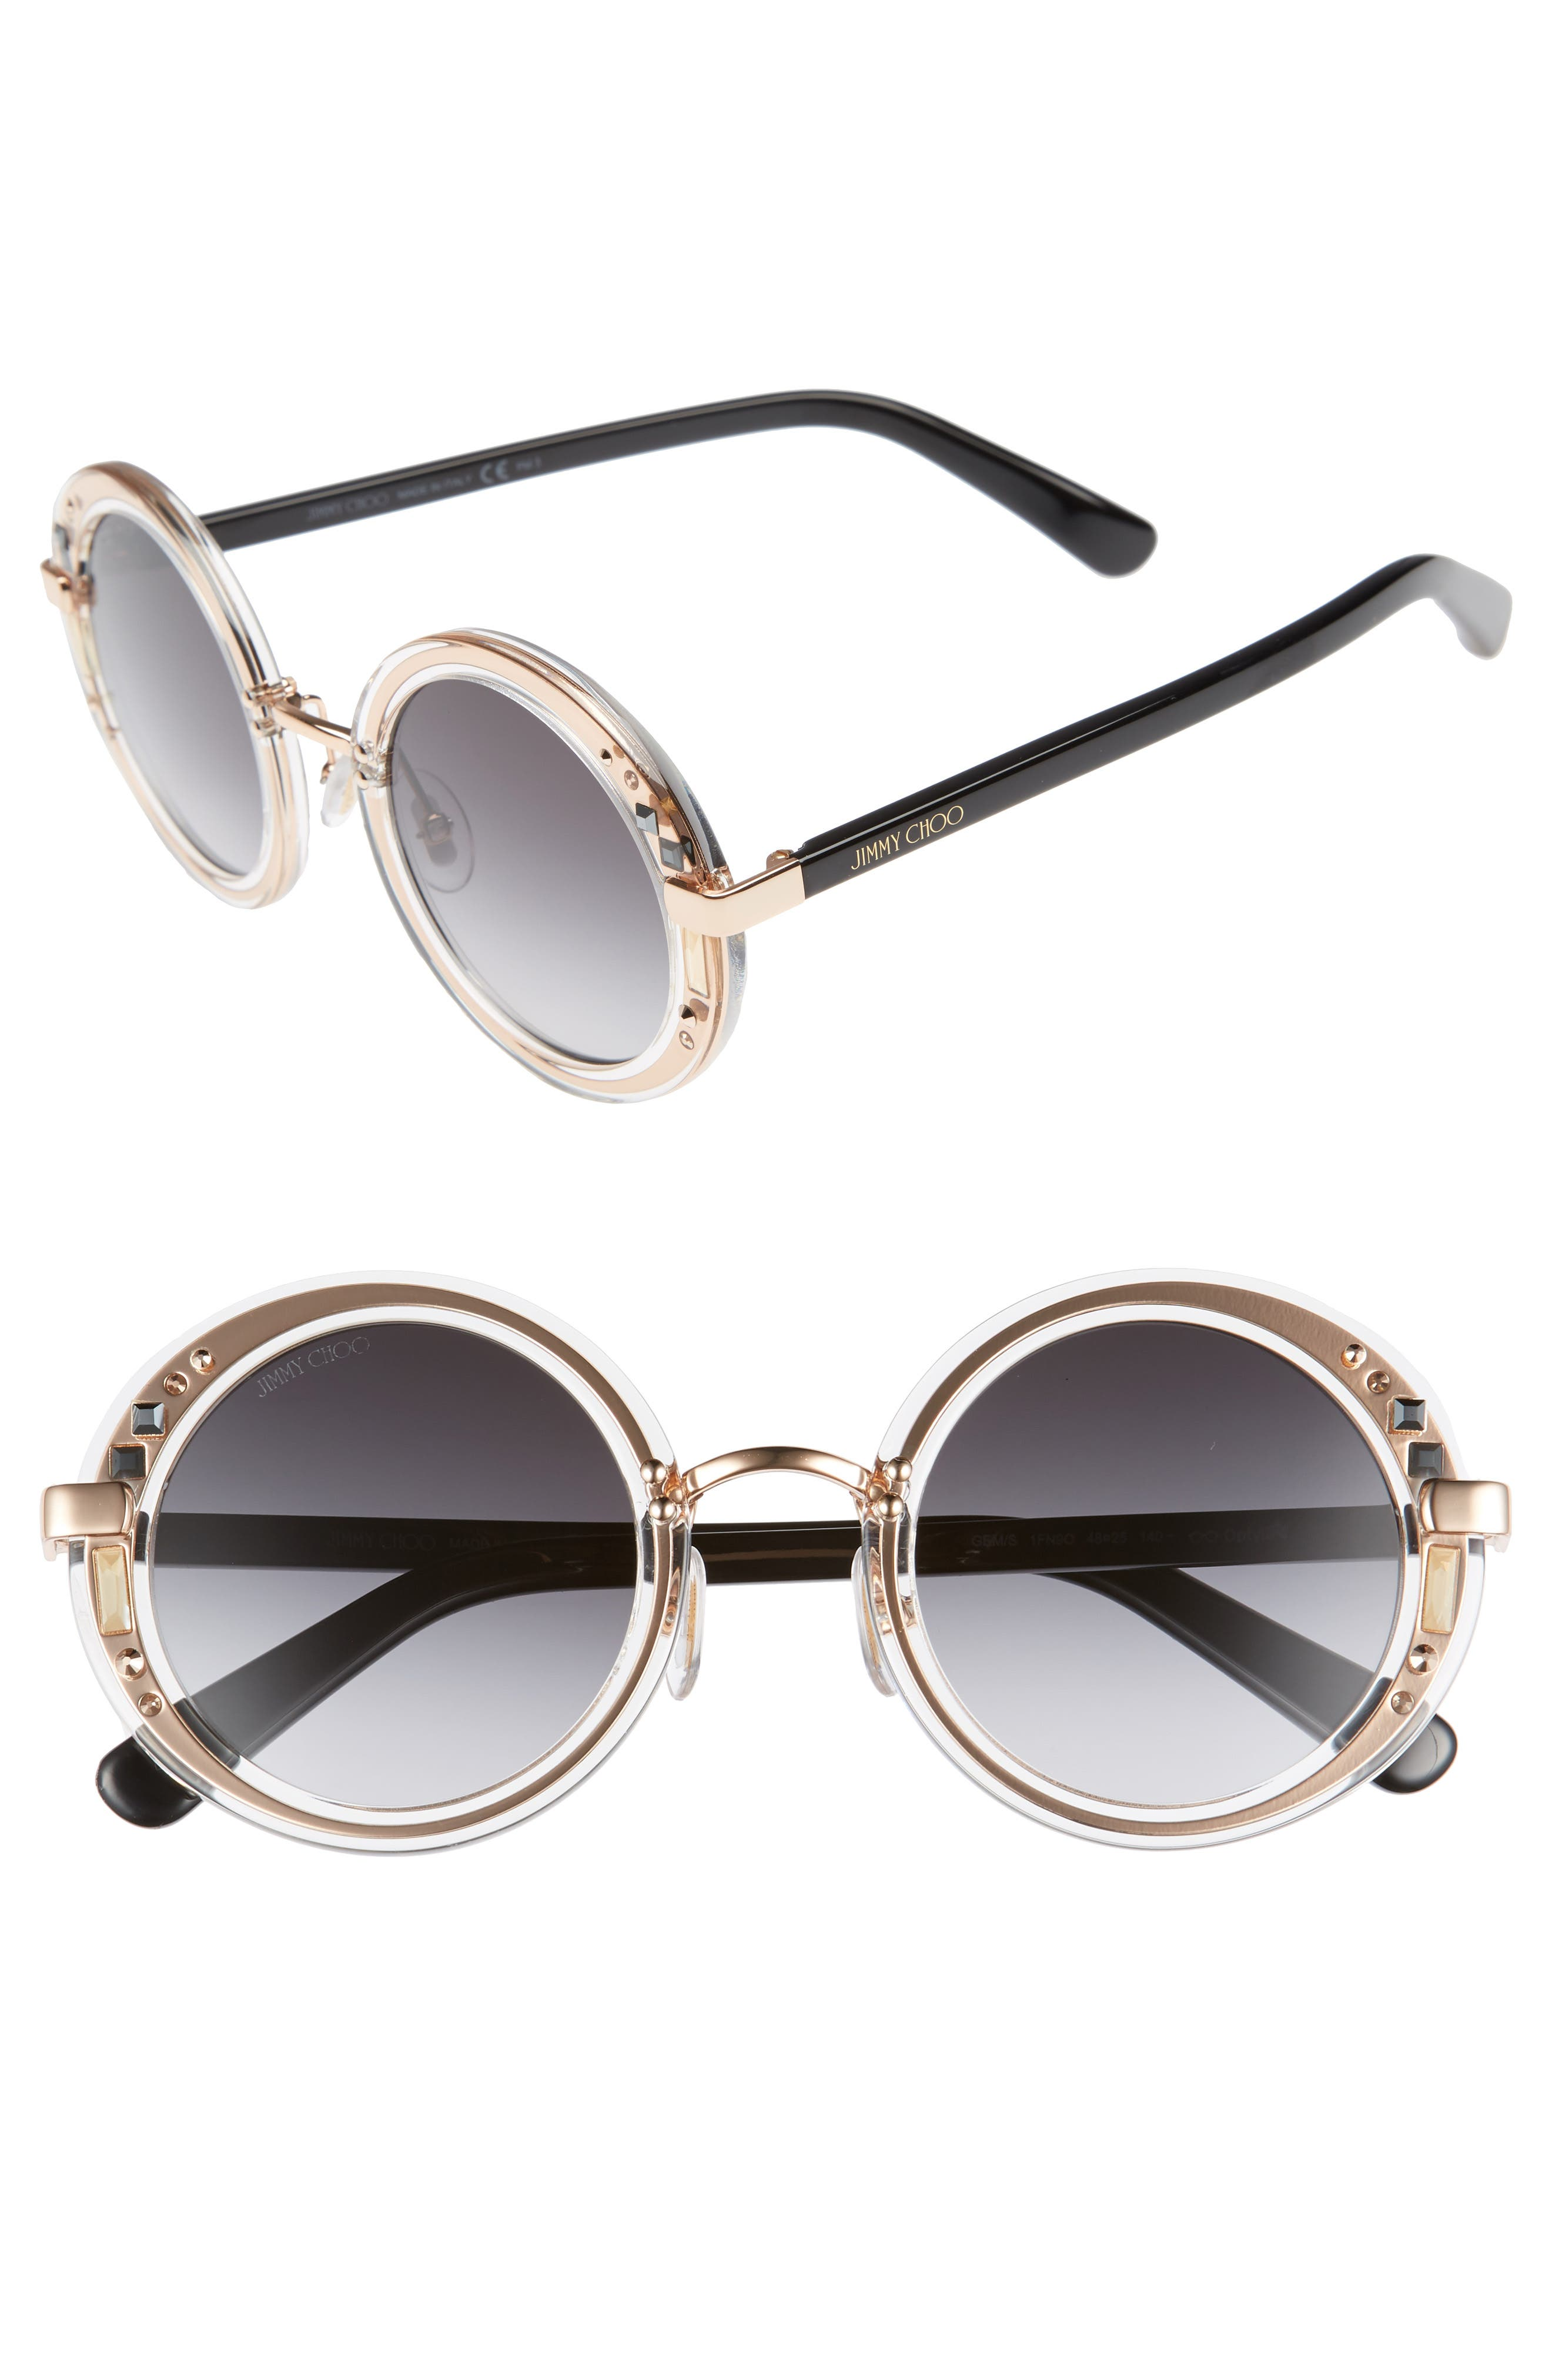 Gems 48mm Round Sunglasses,                         Main,                         color,